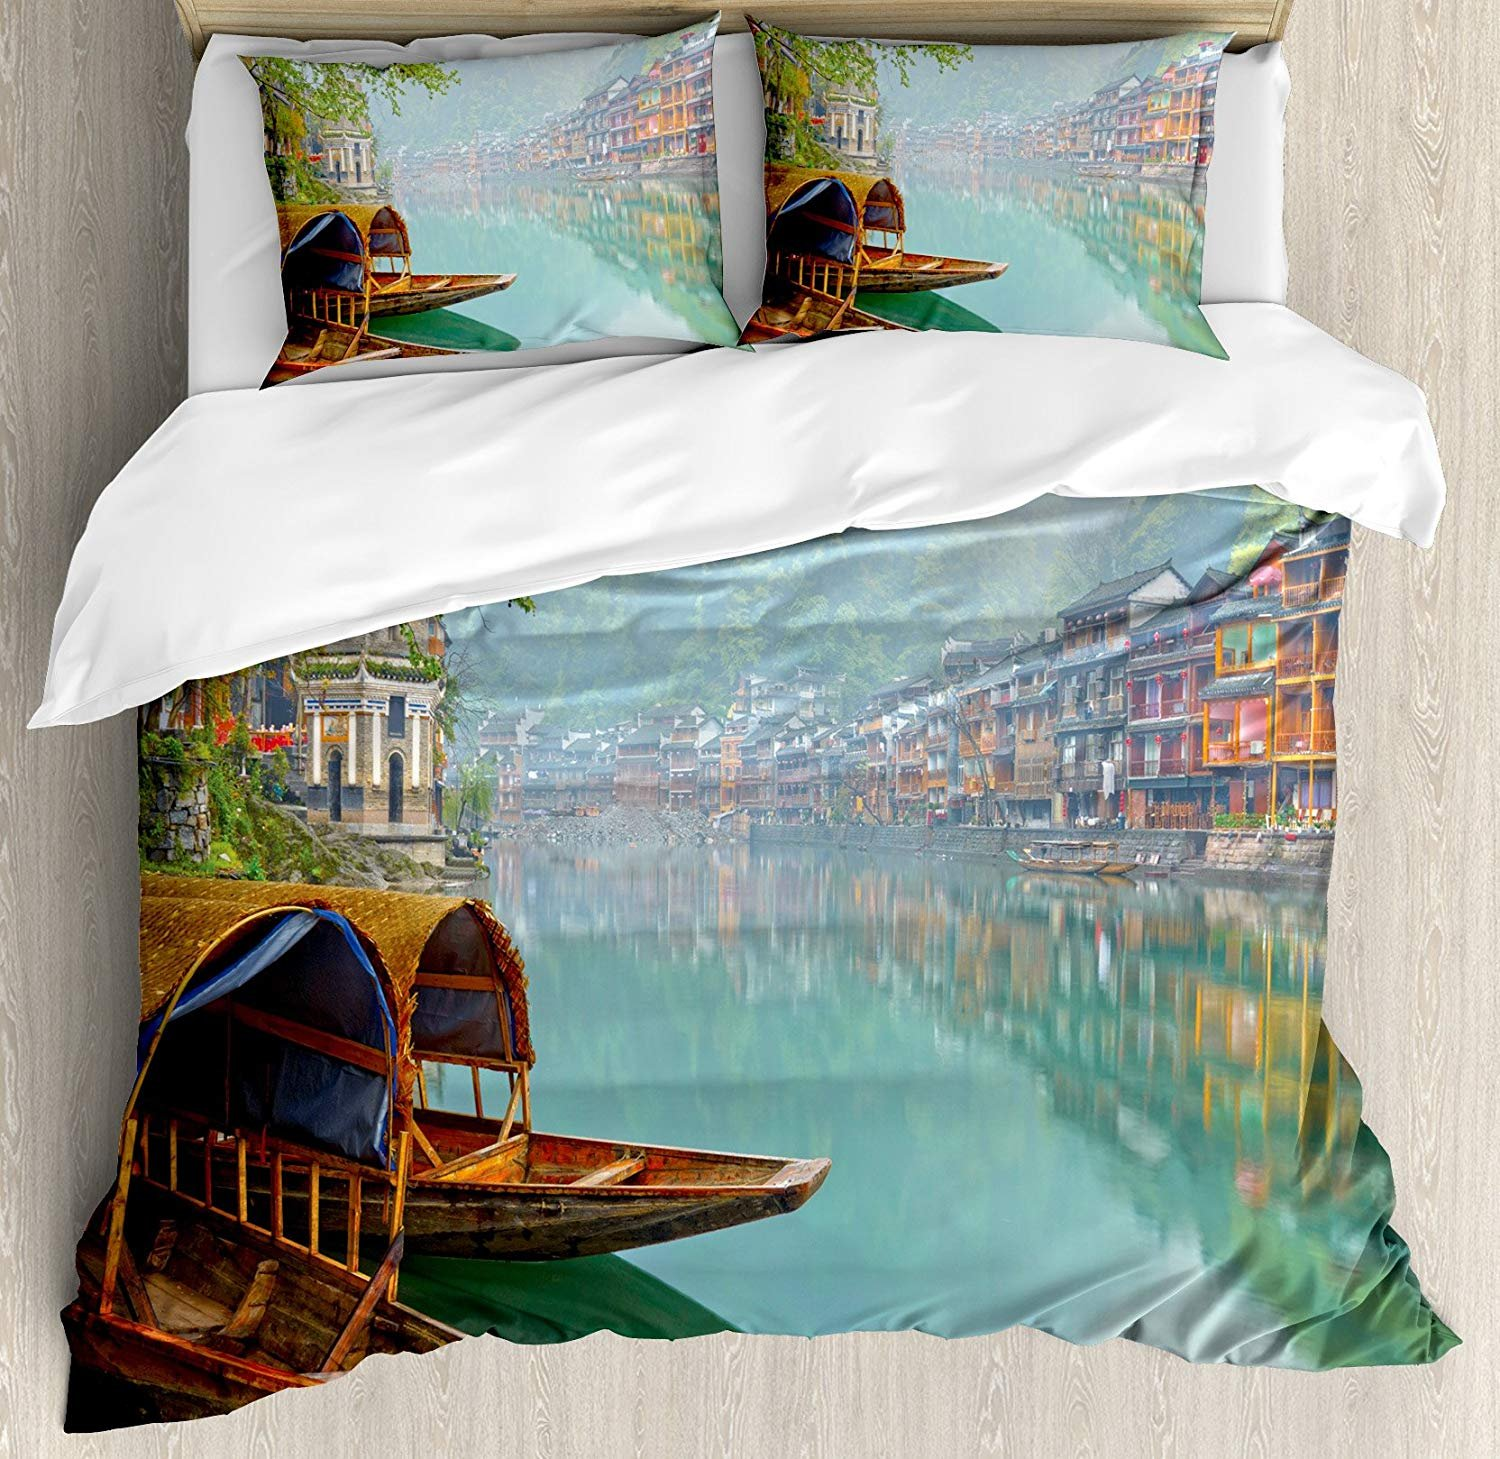 Duvet Cover Set Asian Old Chinese Suburbs Lake Canal with Wood Boats Foggy Asian Eastern Rural Scene Art Ultra Soft Breathable Durable Twill Plush 4 Pcs Bedding Sets for Kids/Teens/Adults Twin Size